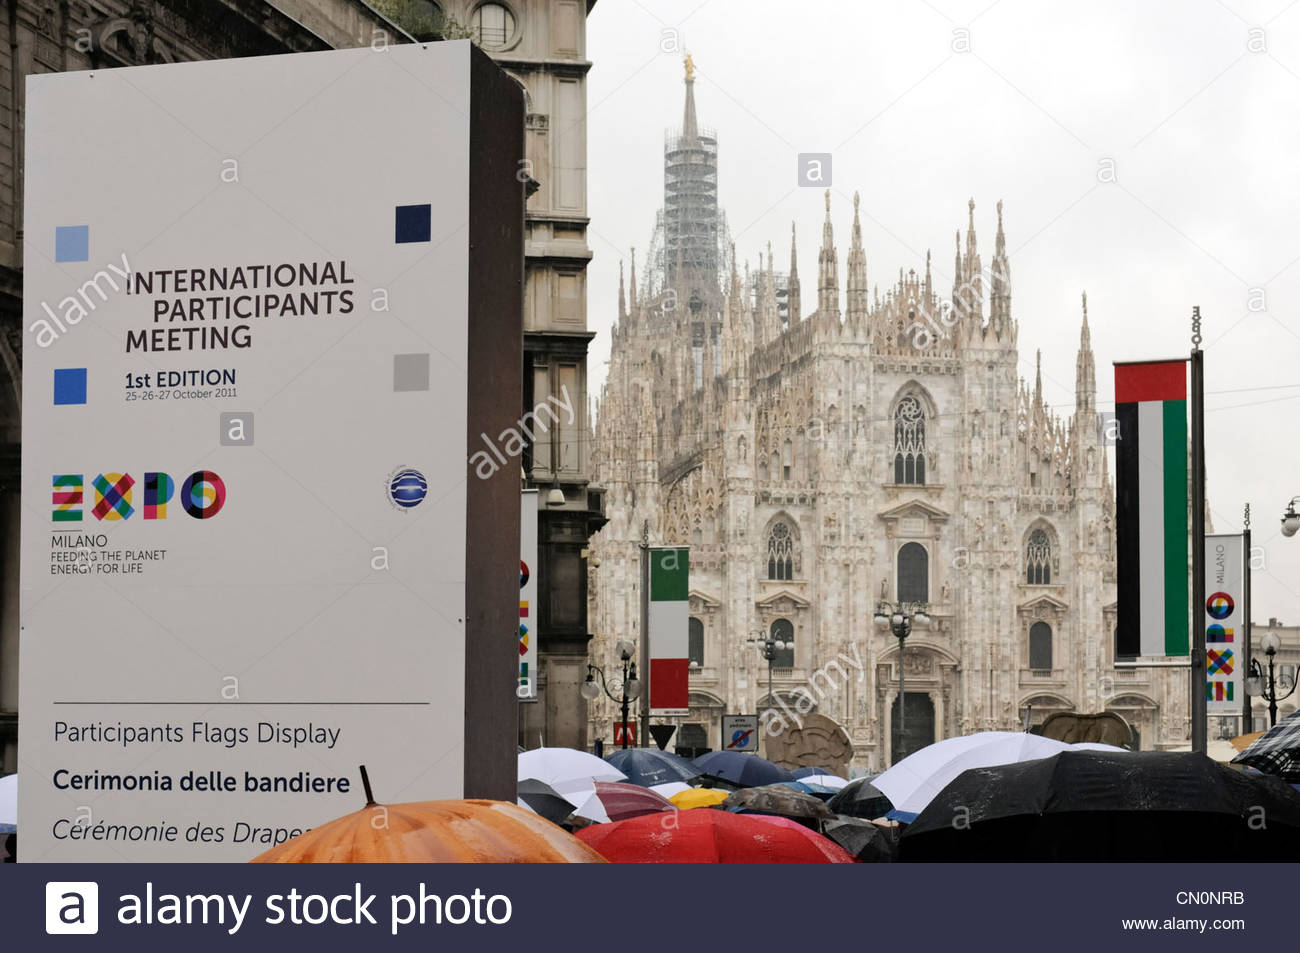 'Expo Milano 2015' International Participants Meeting, 1st edition - Stock Image